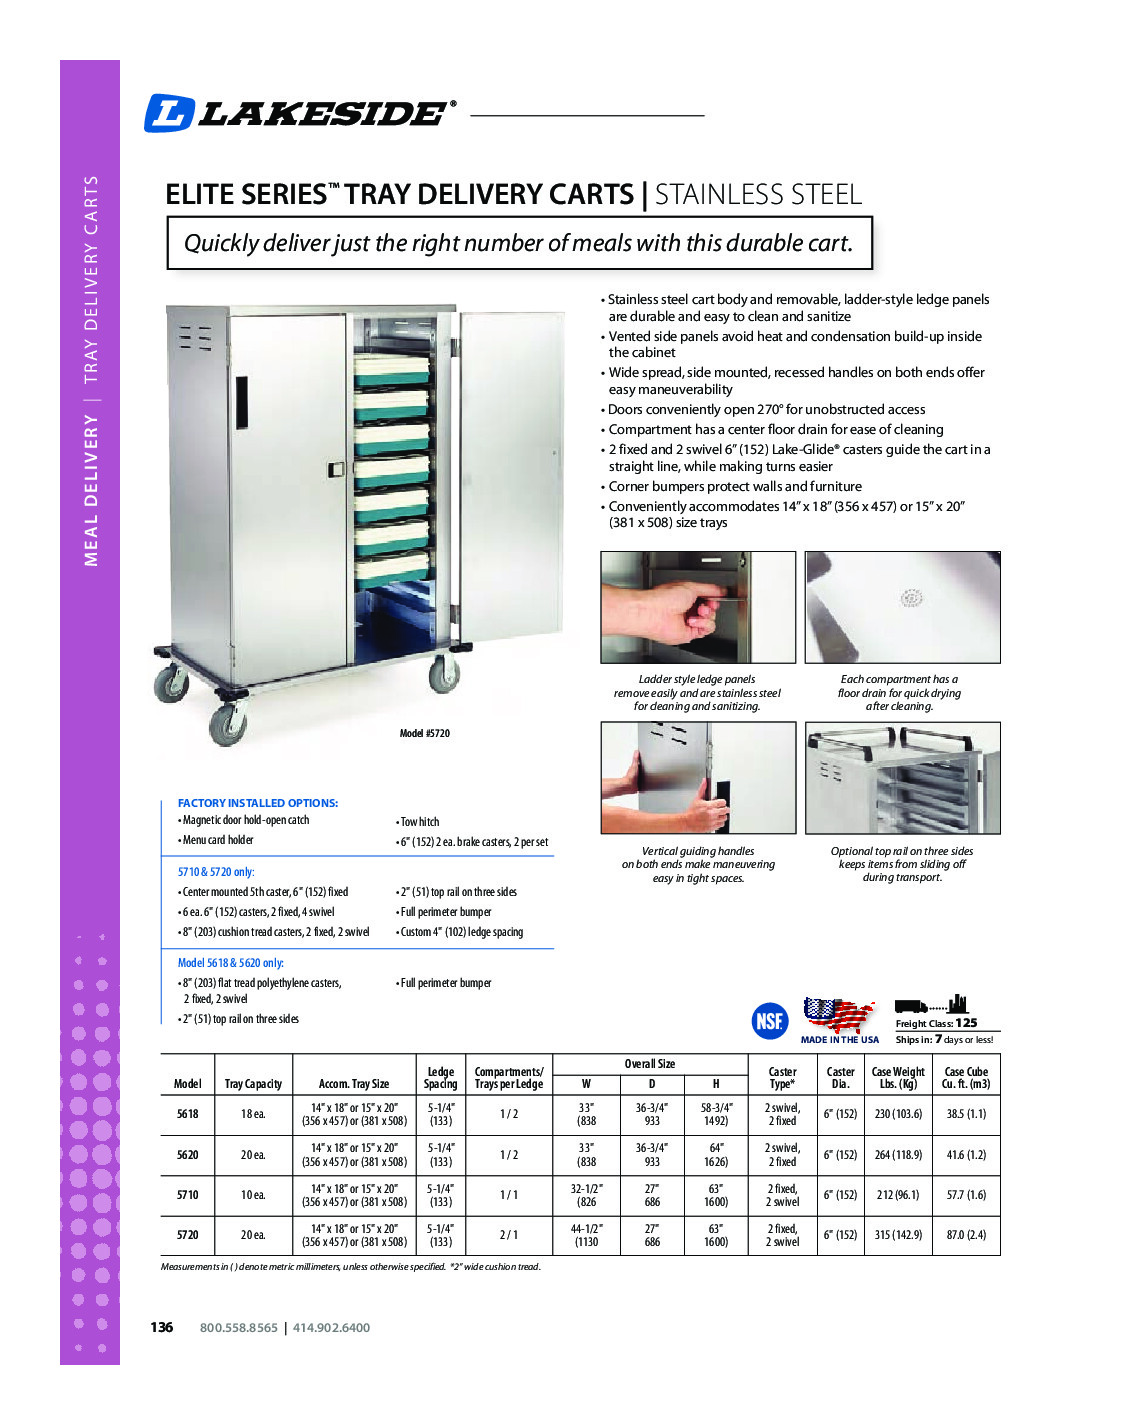 Lakeside 5720 Meal Tray Delivery Cabinet